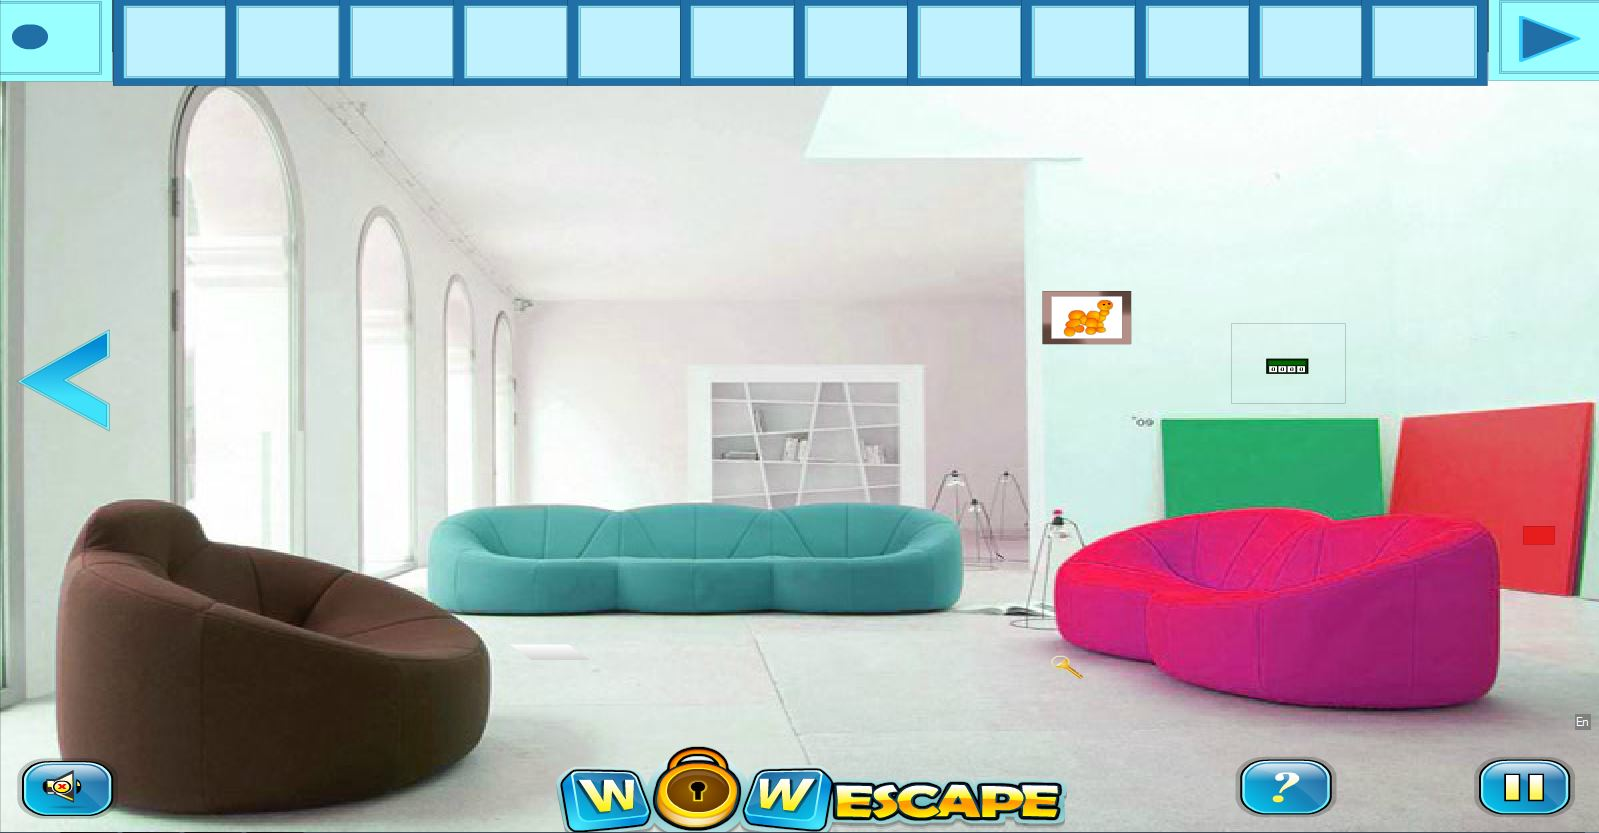 modern escape You are trapped in an modern city house you have to escape from this house by using objects, and clues use your brainpower and get away from the house have fun.